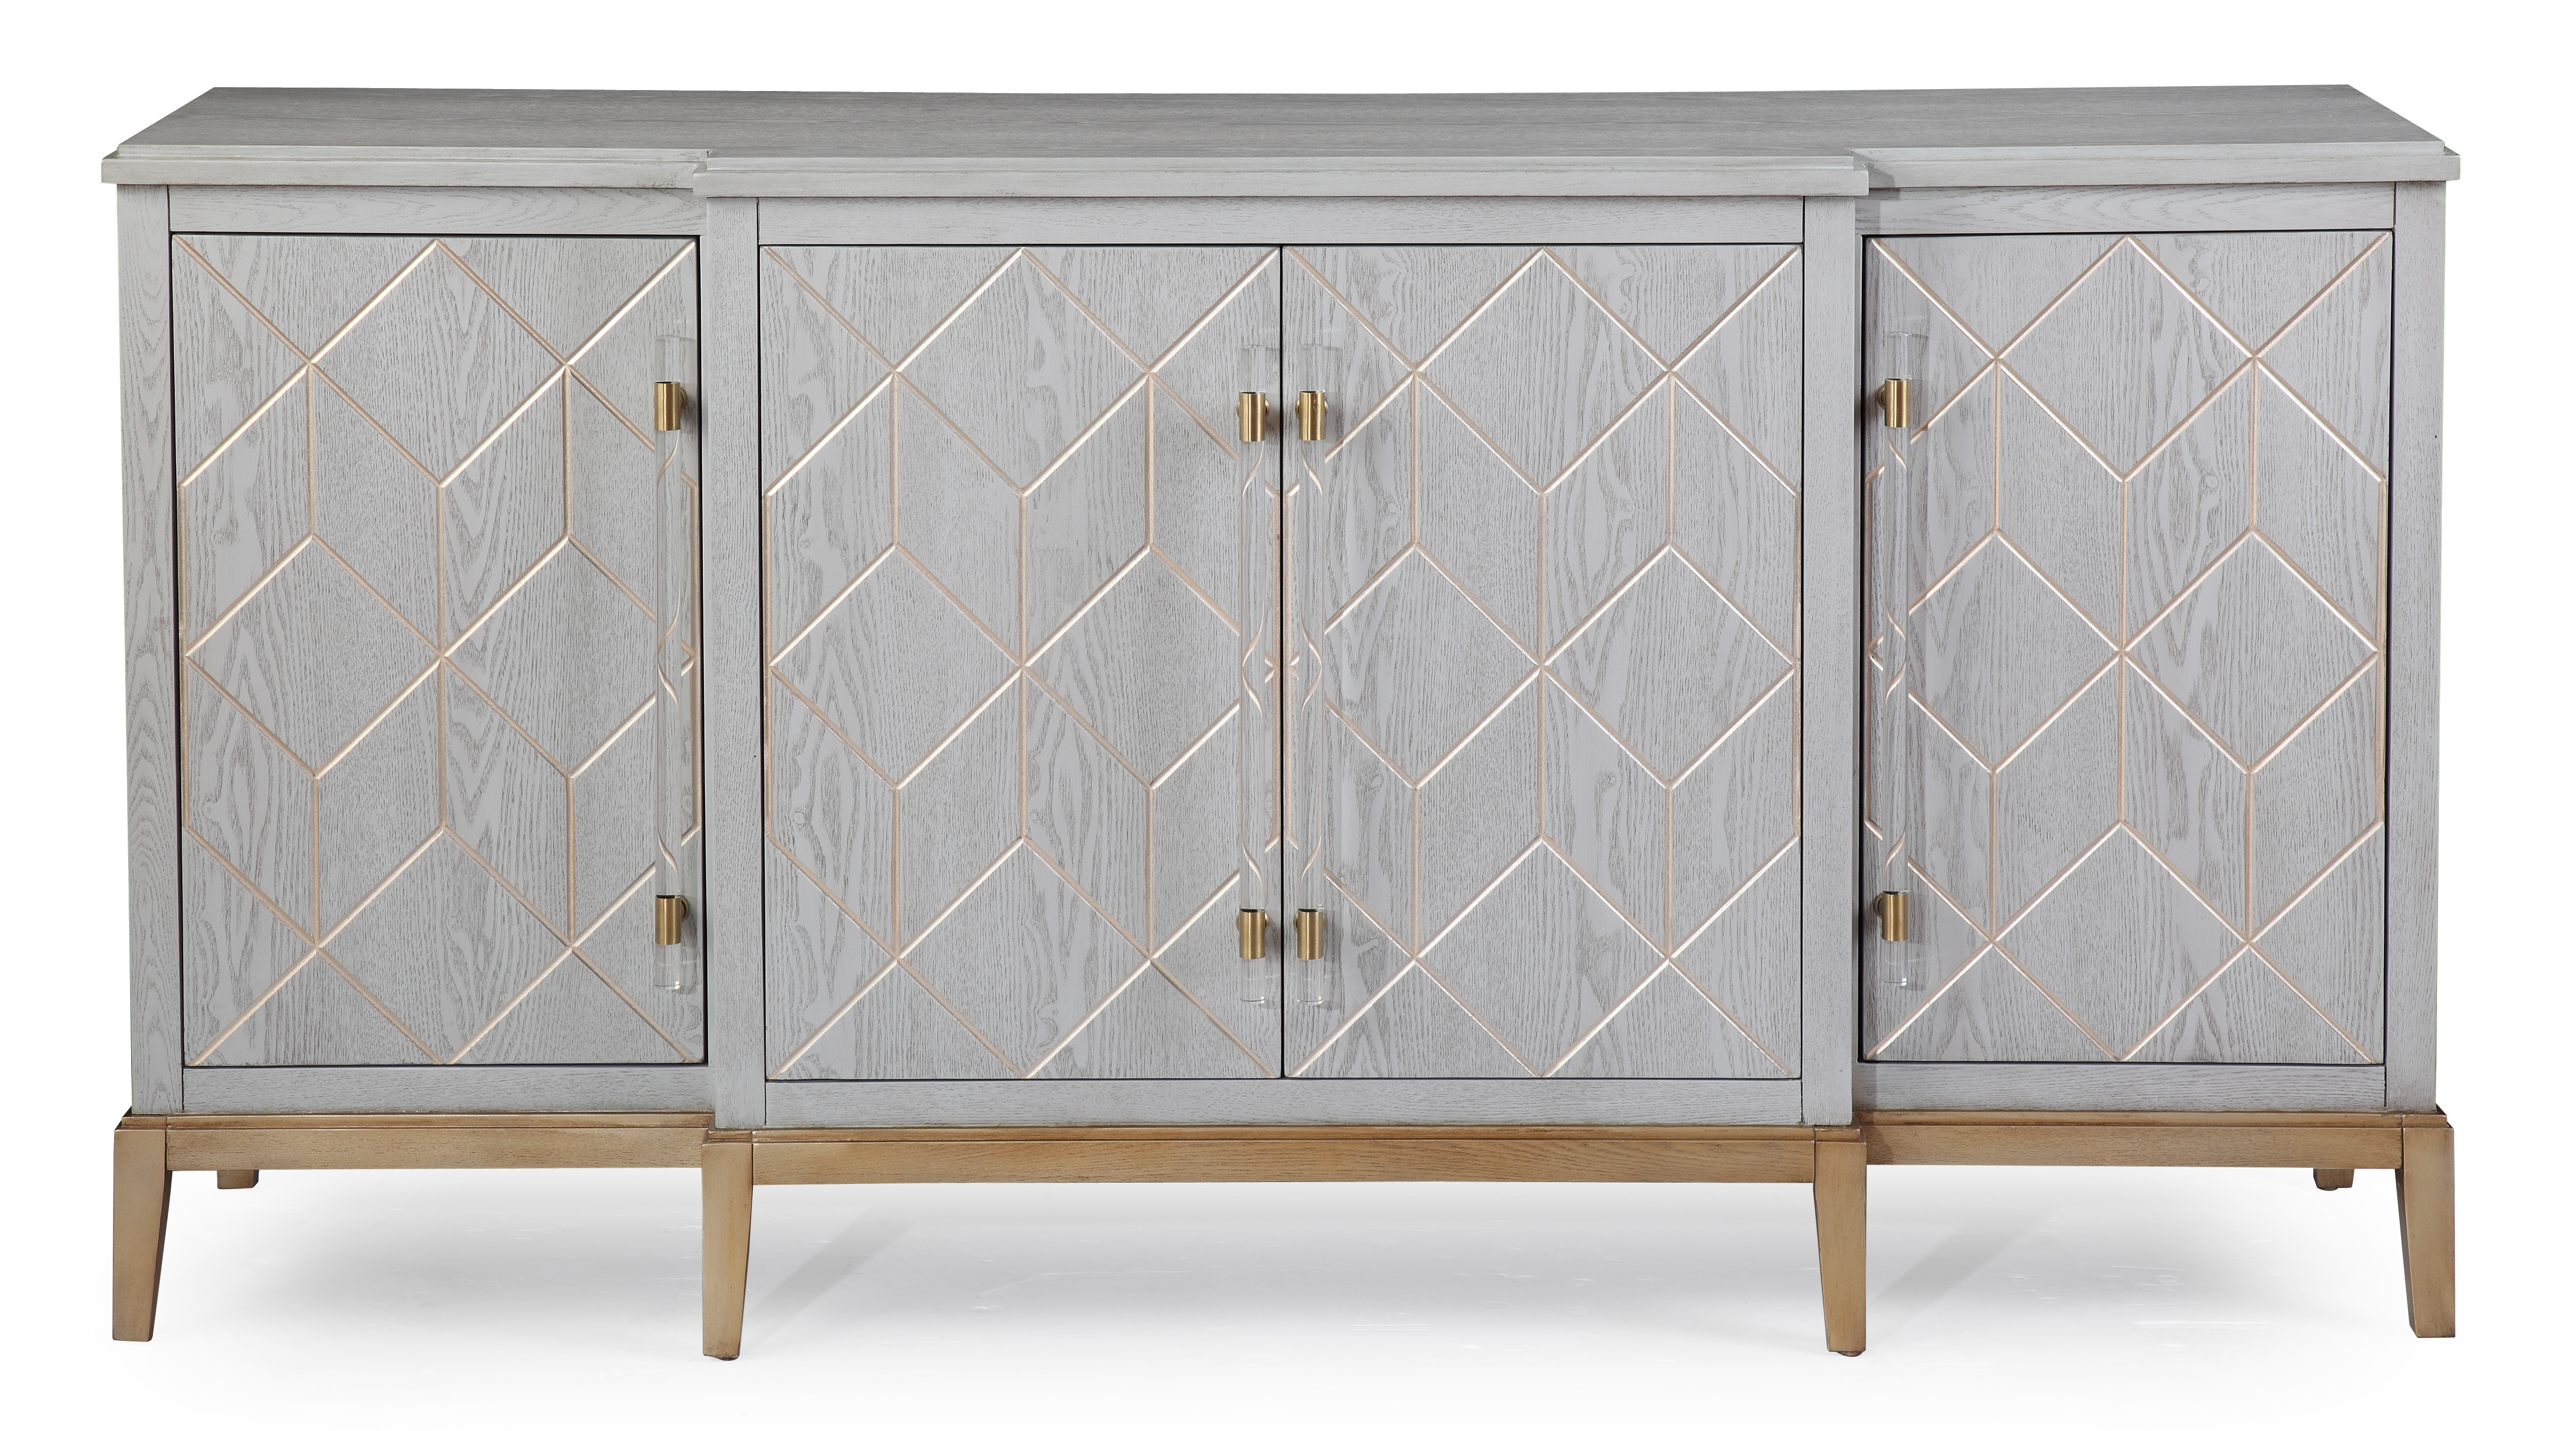 Farmhouse & Rustic Gray Wood Sideboards & Buffets | Birch Lane Within 2017 Candide Wood Credenzas (View 7 of 20)